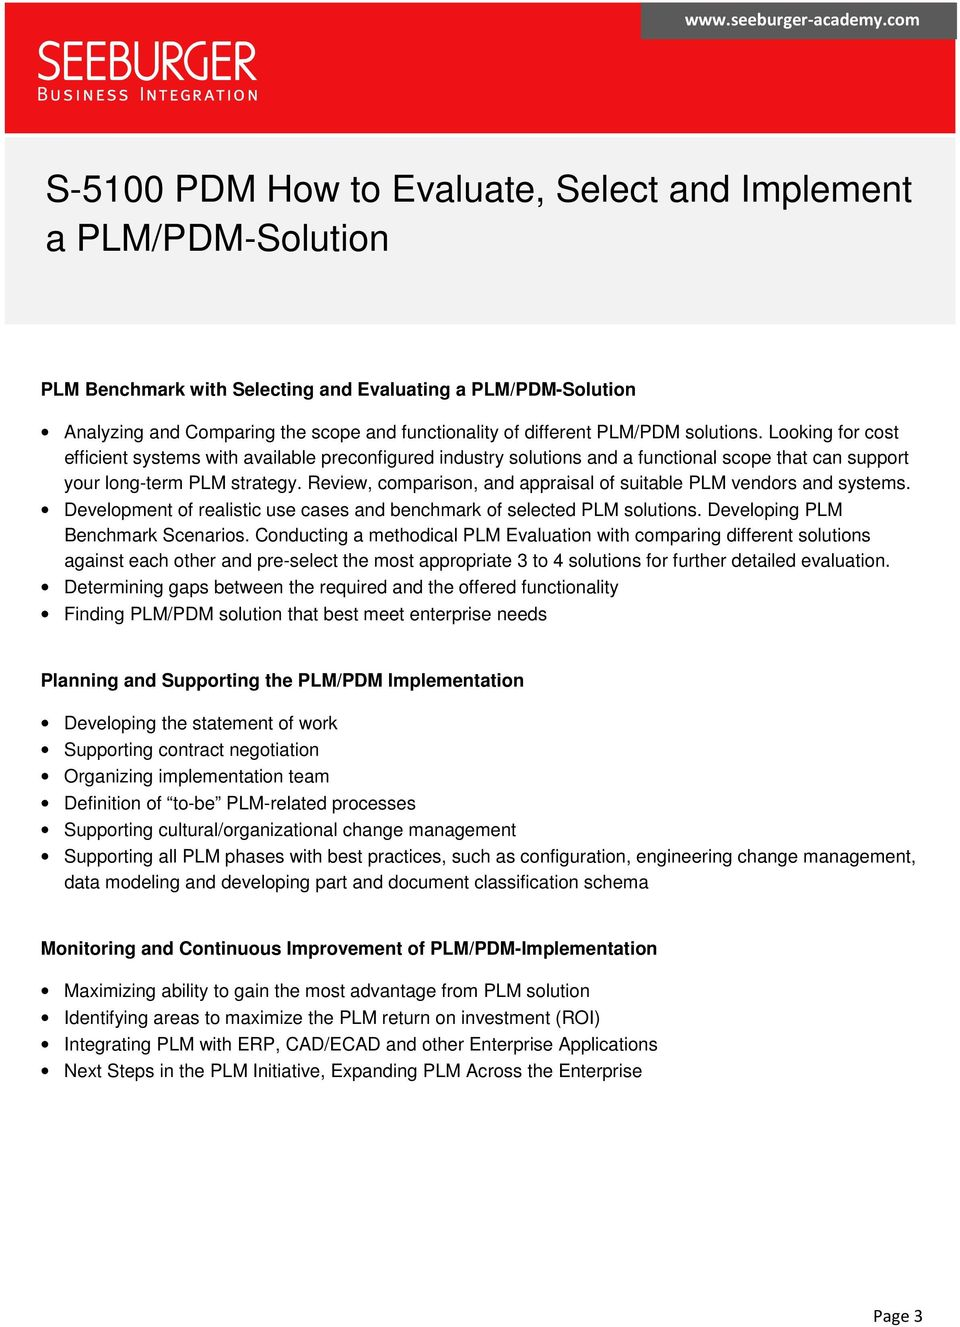 Review, comparison, and appraisal of suitable PLM vendors and systems. Development of realistic use cases and benchmark of selected PLM solutions. Developing PLM Benchmark Scenarios.